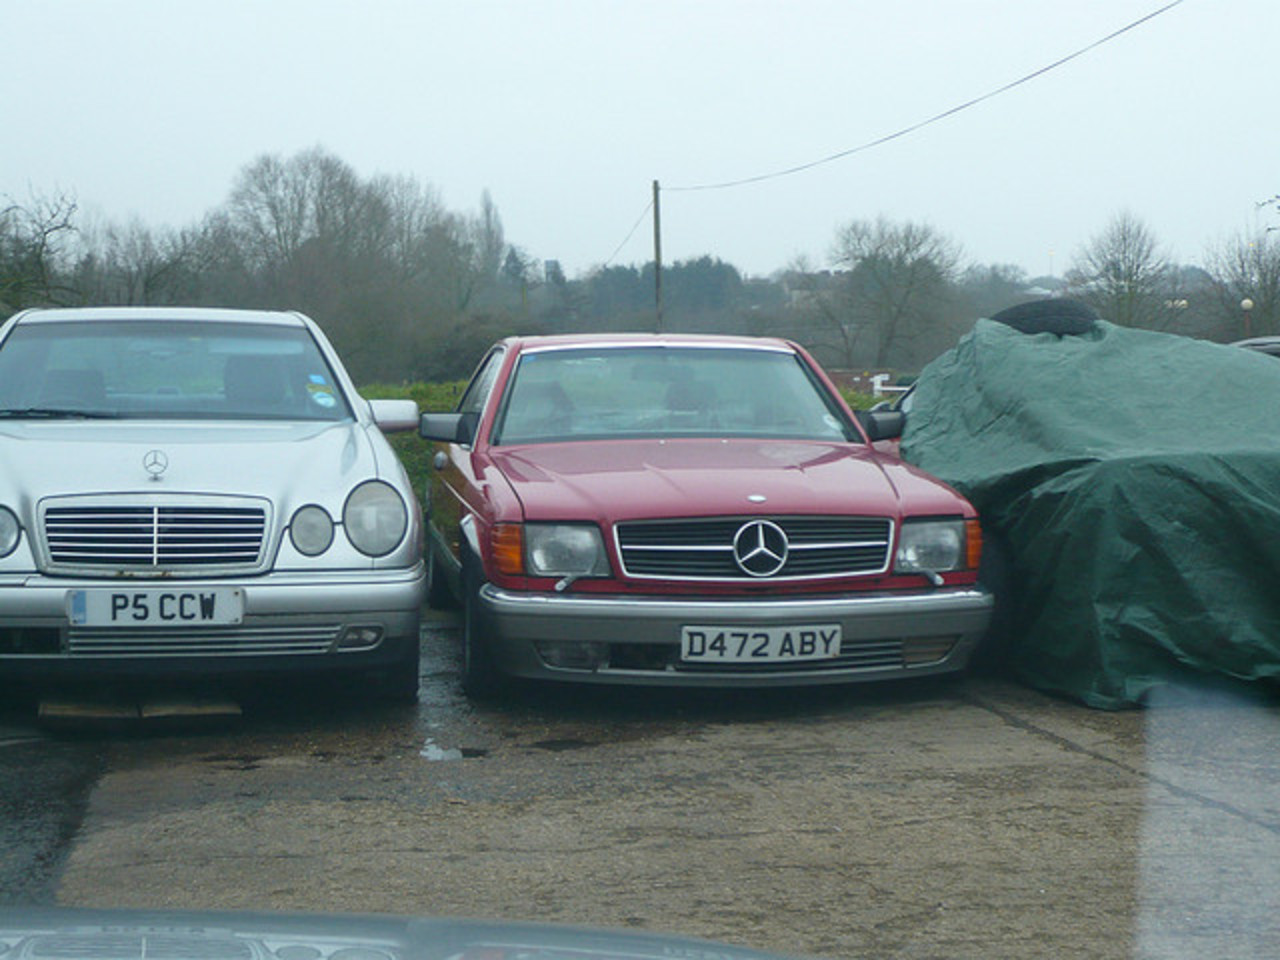 1986 Mercedes Benz 560 SEC W126 in Colchester | Flickr - Photo ...